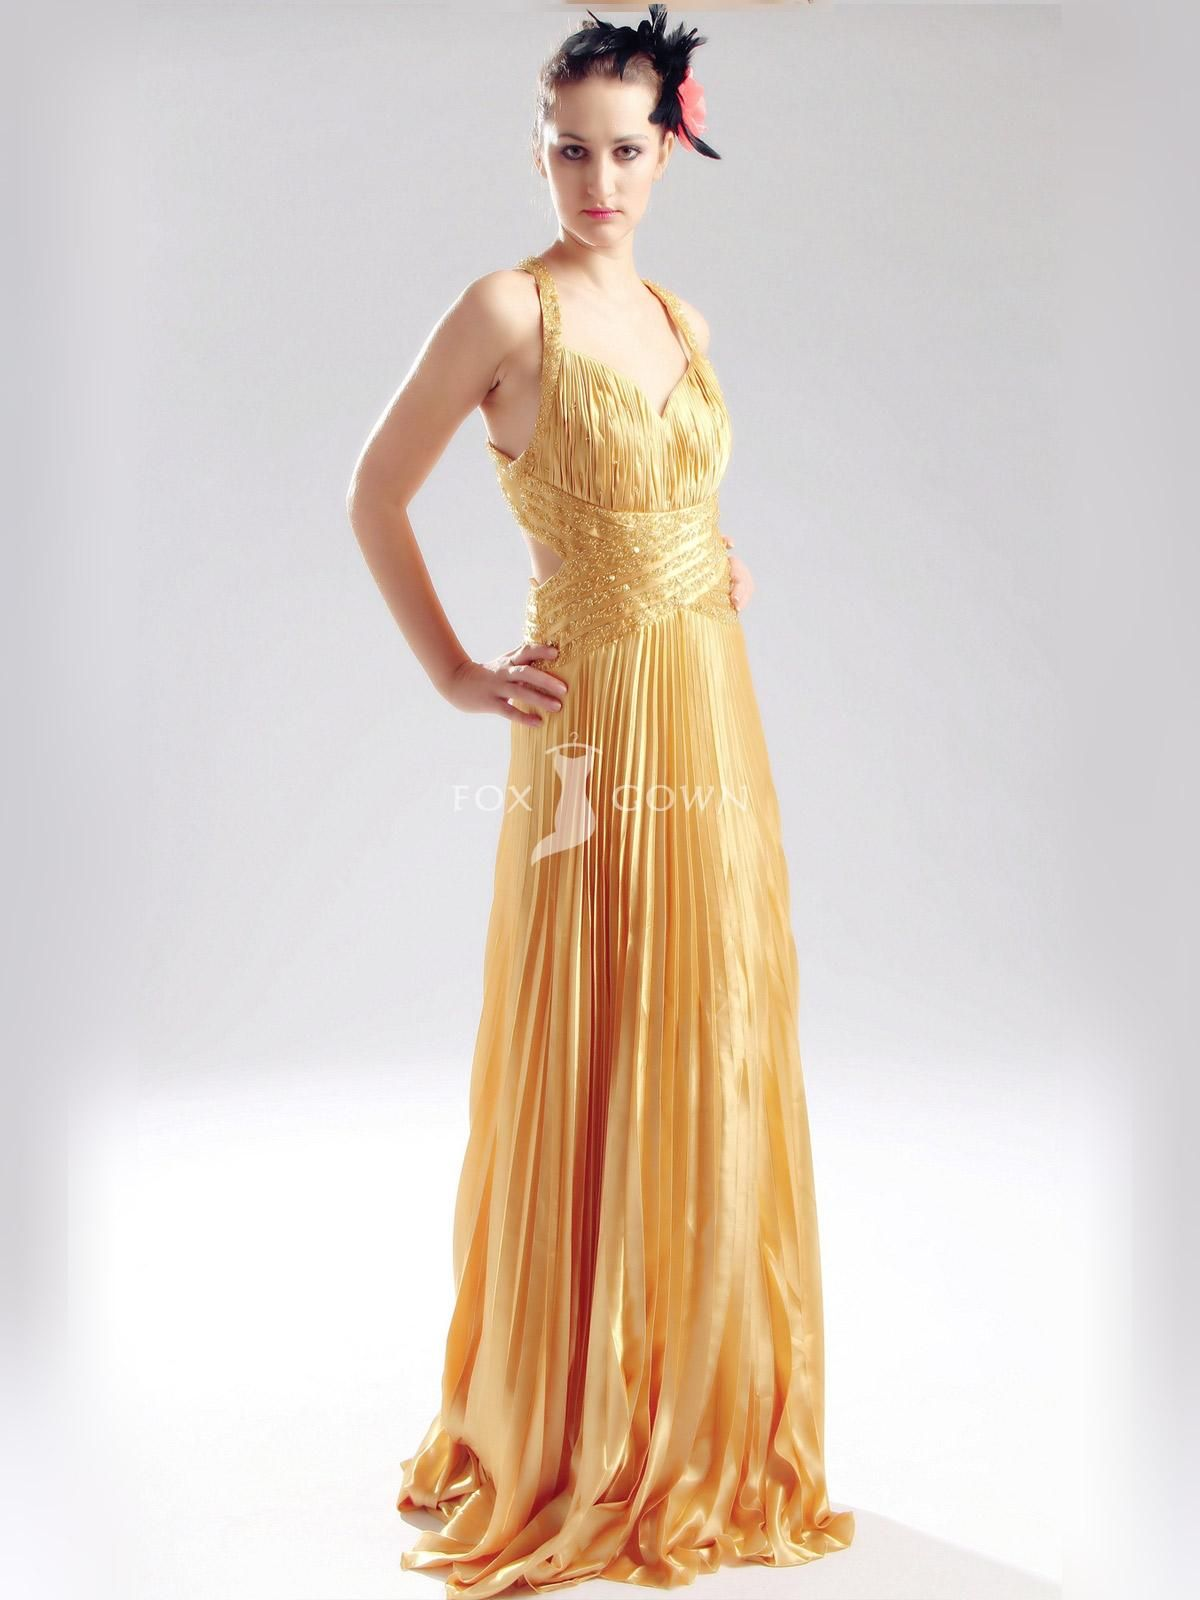 Gold prom dresses a r c h i t e c t u r e pinterest gold prom